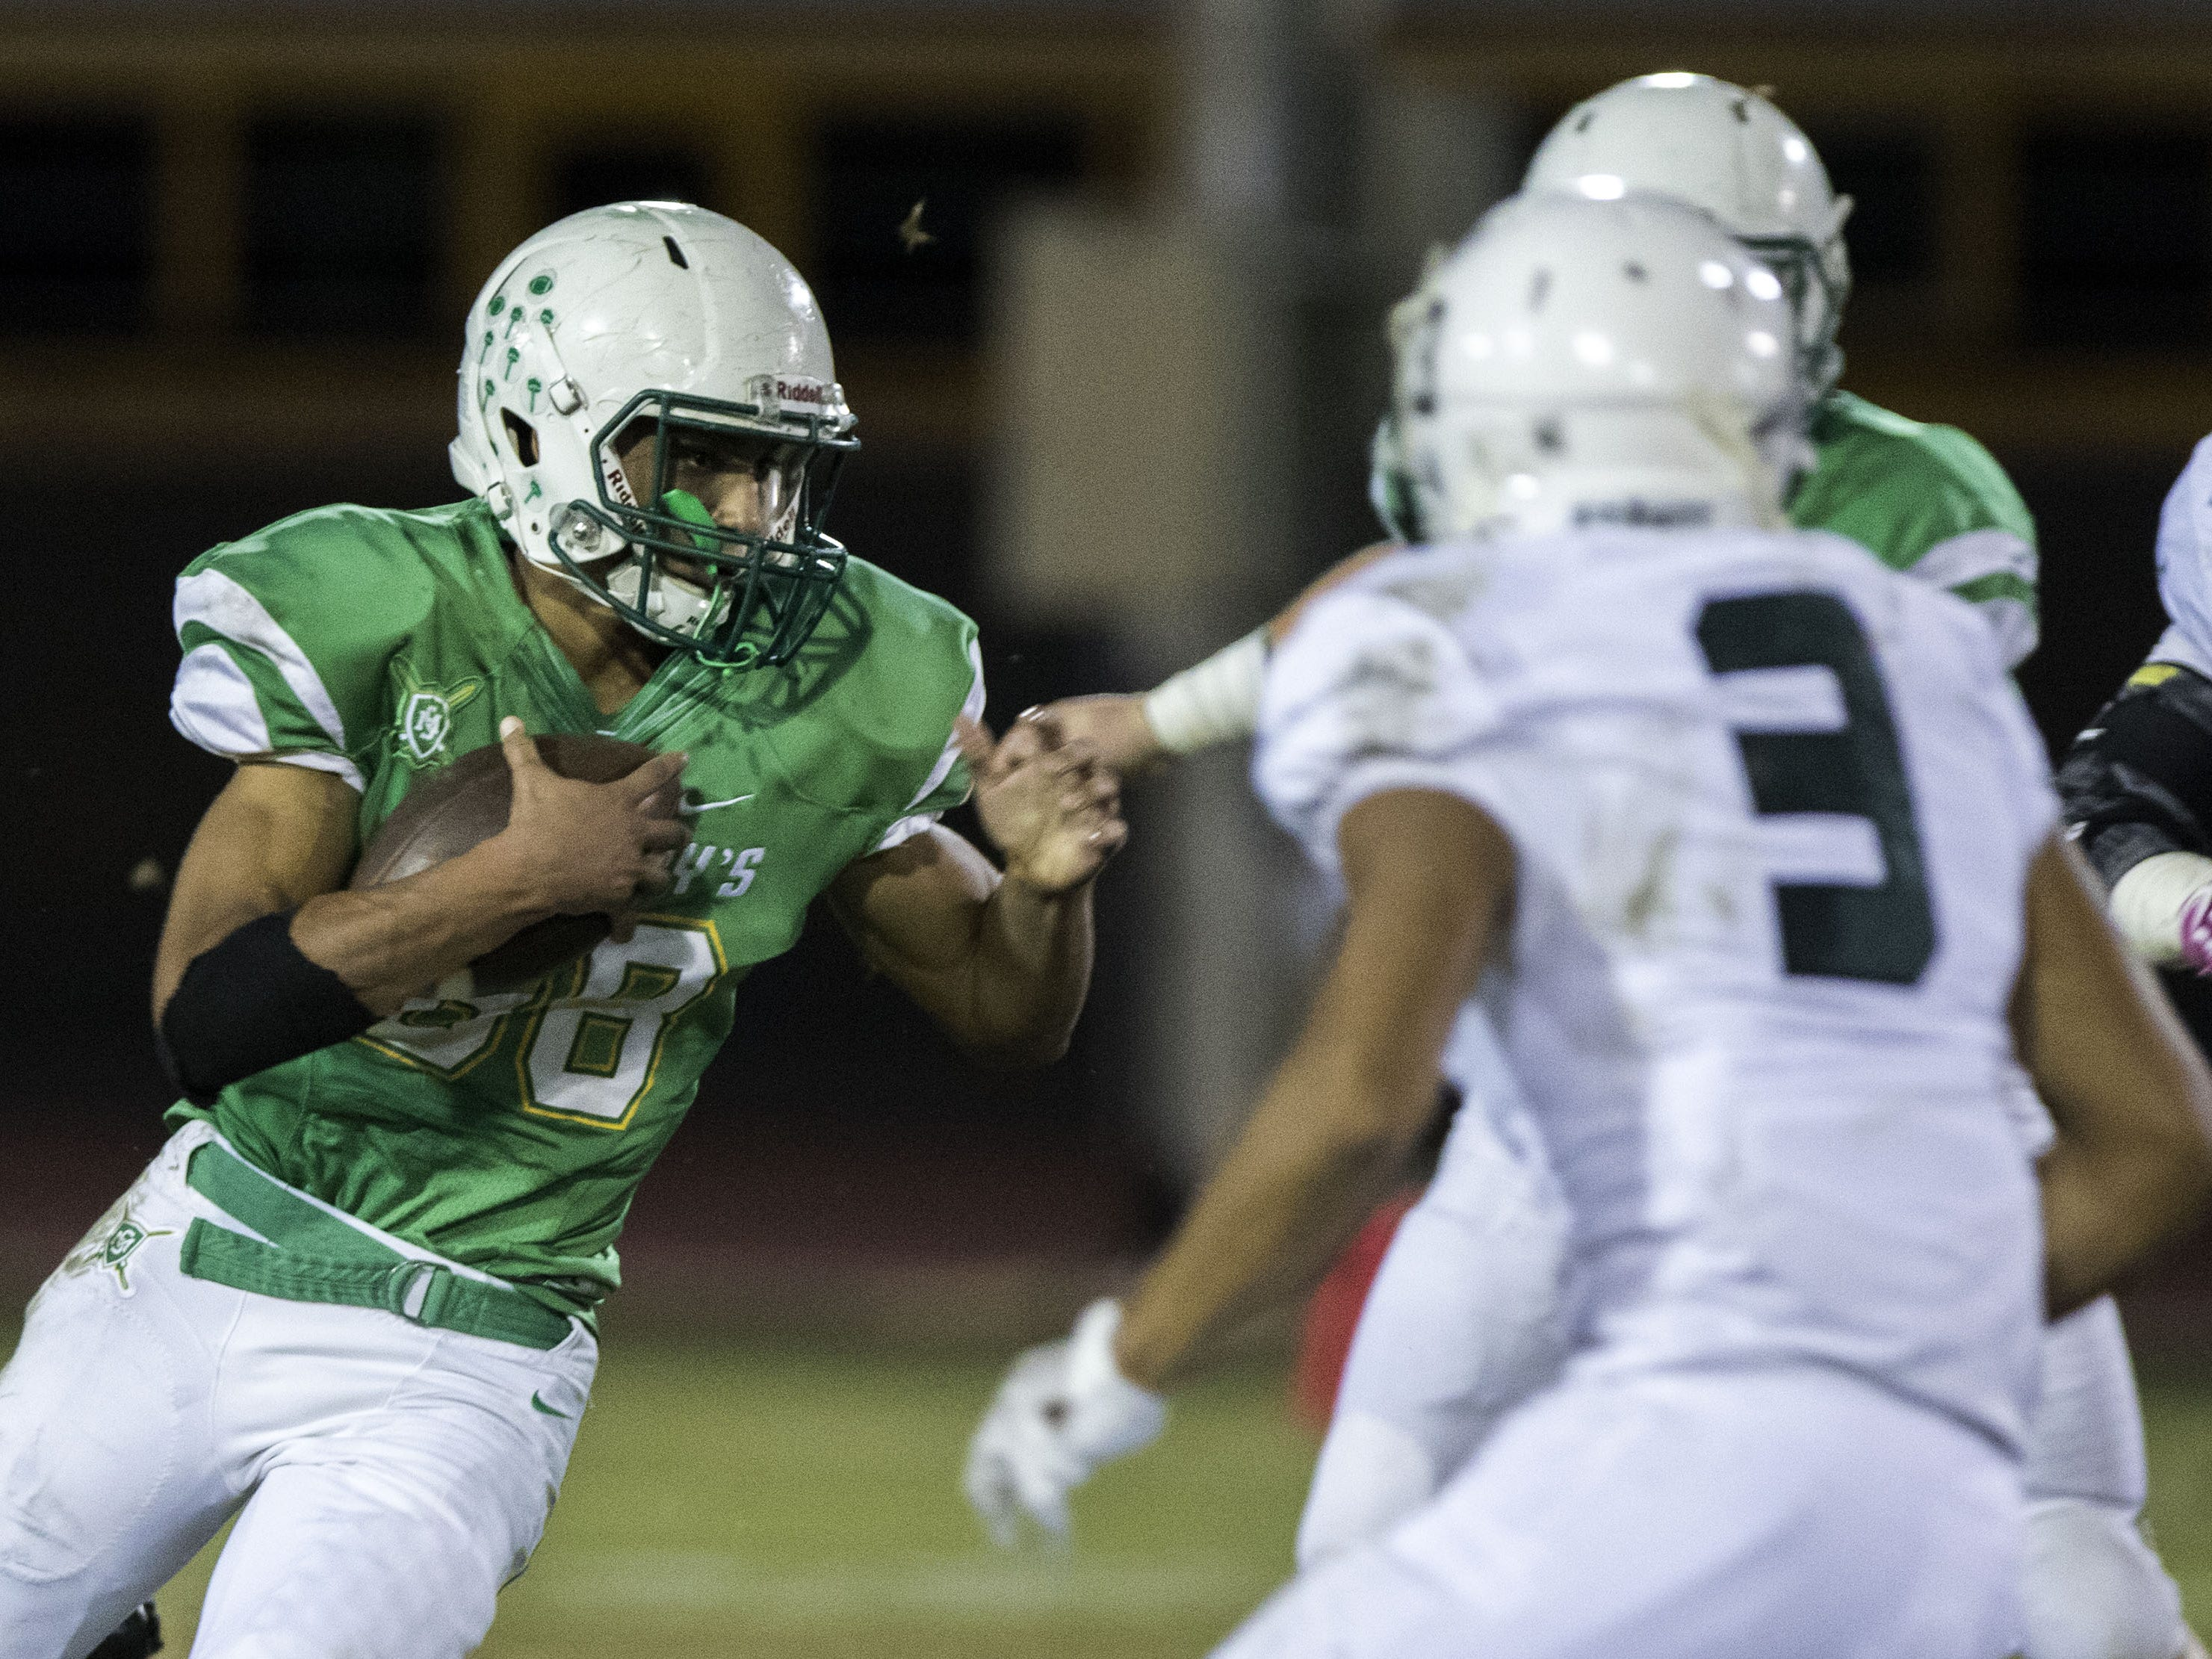 St. Mary's Sam Bryant looks for running room against Greenway during their game at Phoenix College in Phoenix Friday, Oct. 12, 2018. #azhsfb